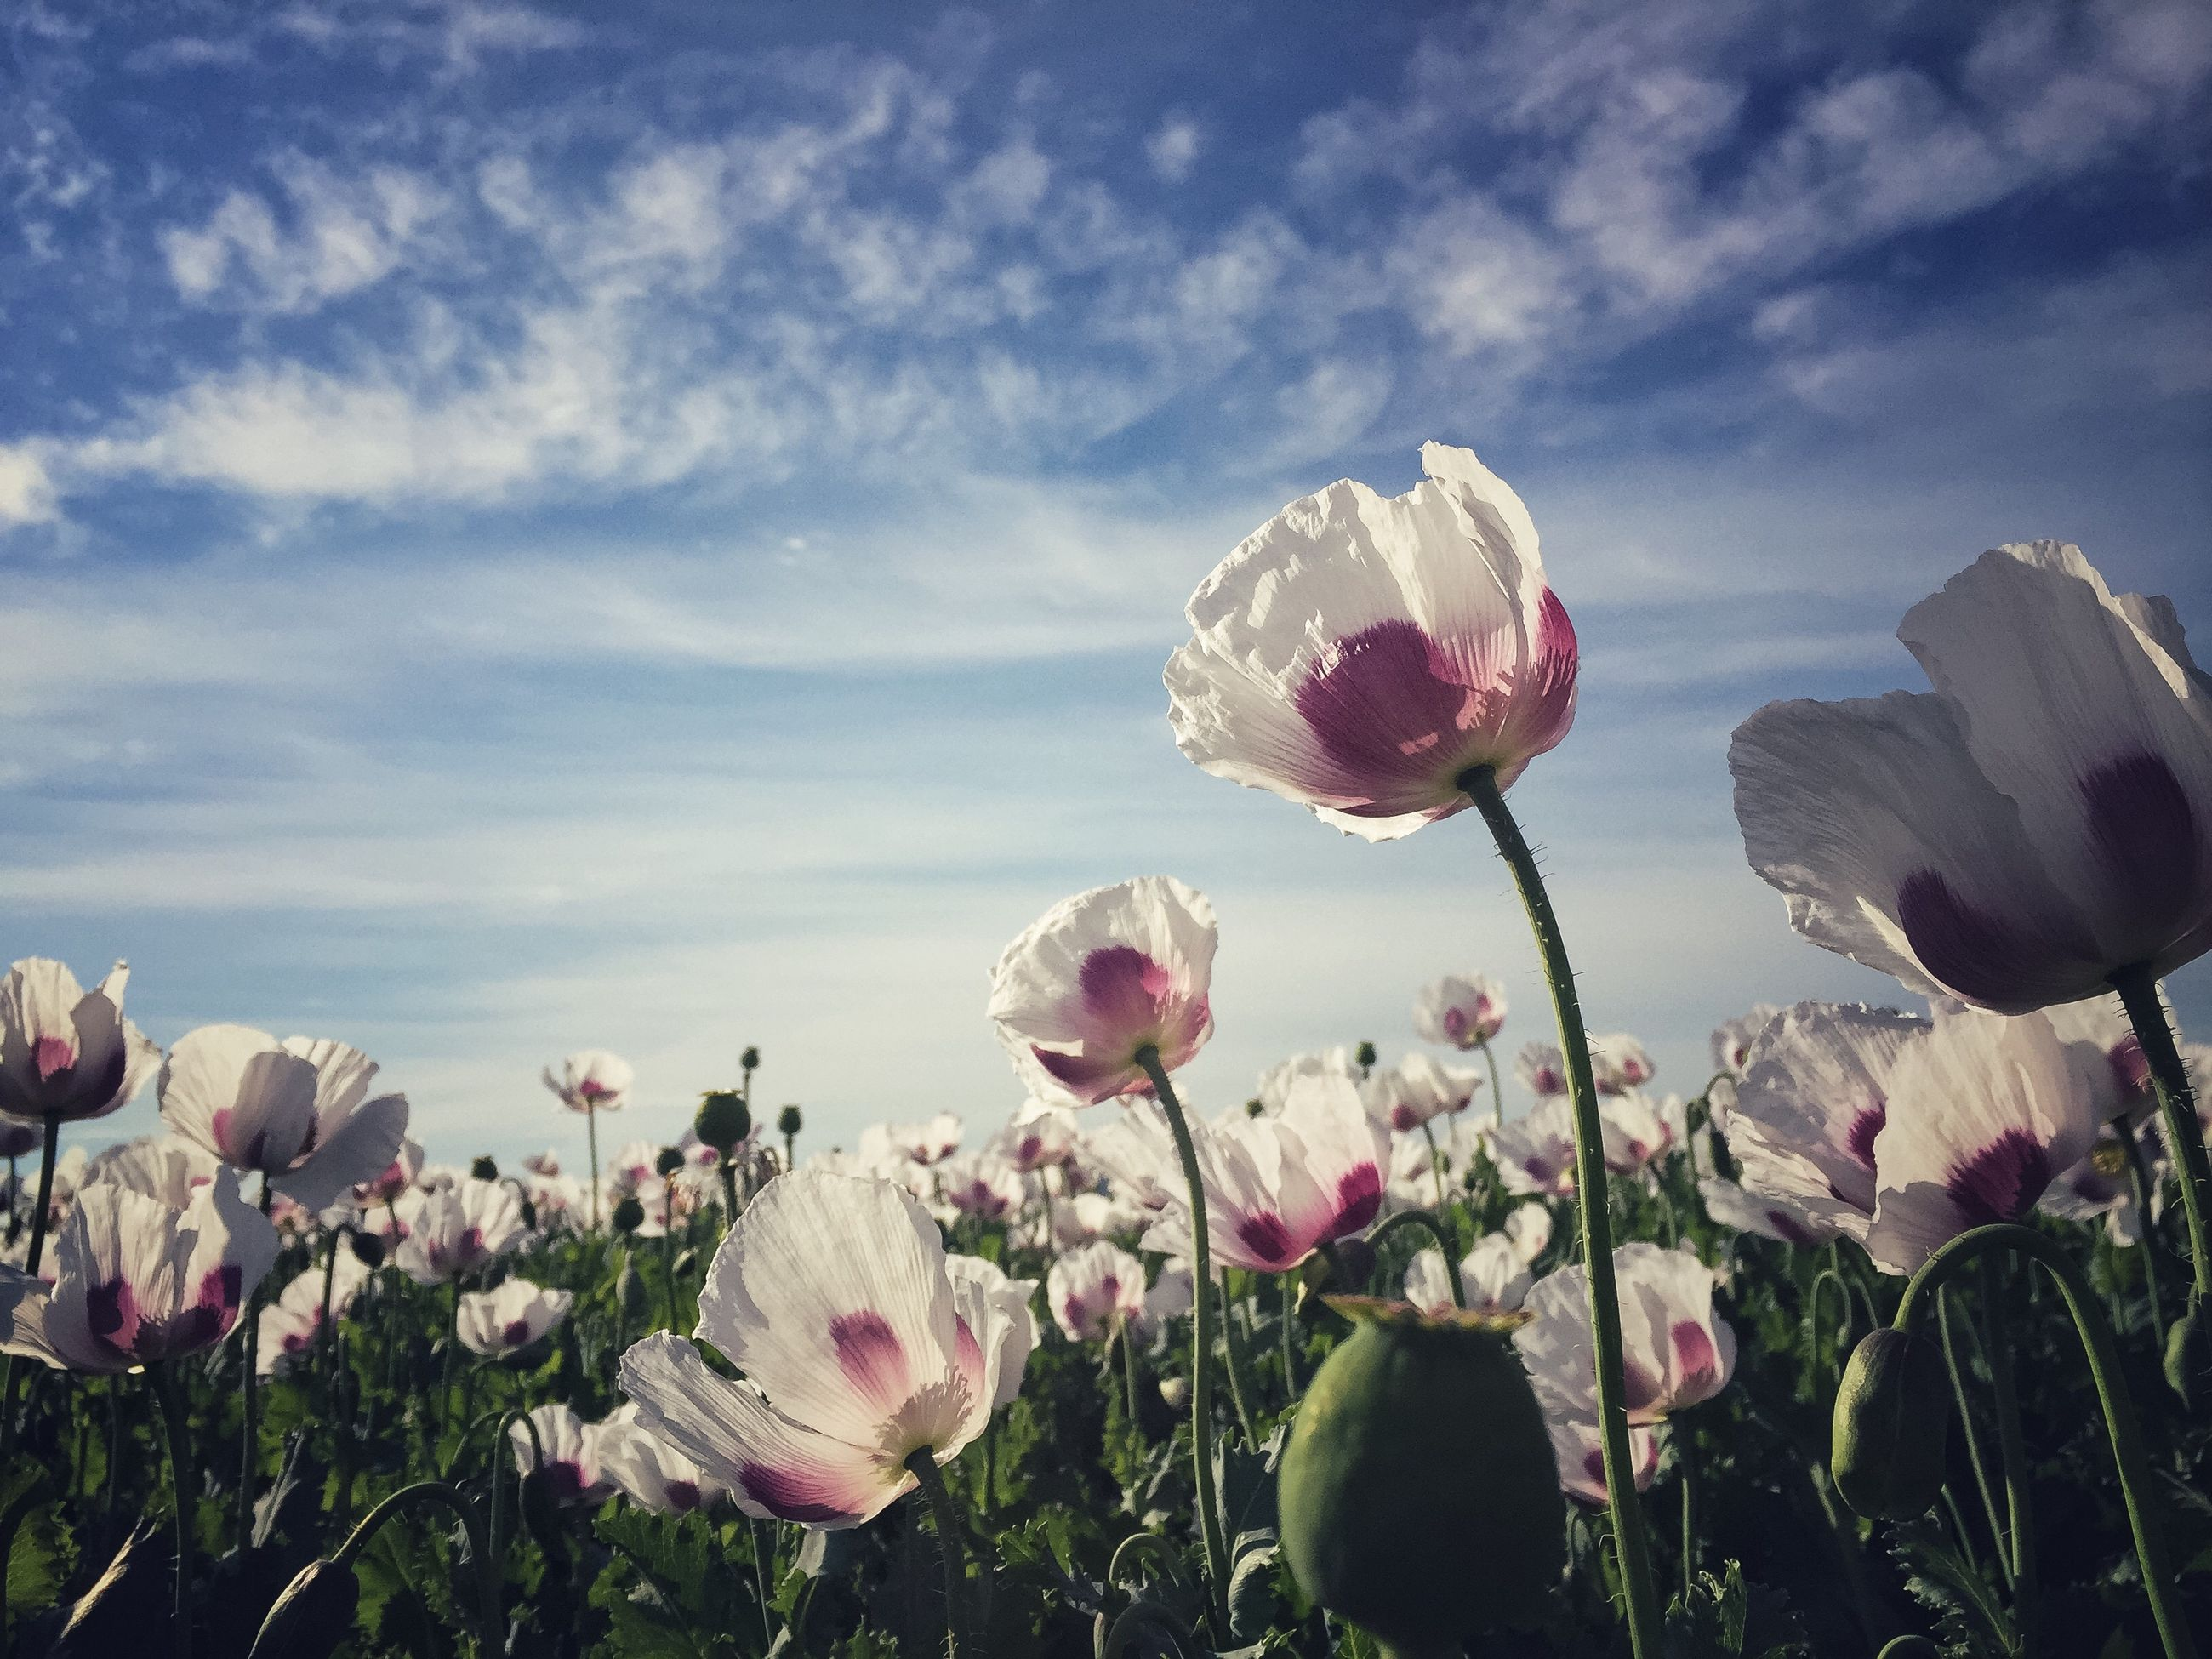 fragility, freshness, flower, growth, beauty in nature, petal, sky, flower head, in bloom, stem, nature, close-up, blossom, cloud, springtime, plant, season, botany, pink color, field, cloud - sky, focus on foreground, abundance, day, scenics, blooming, outdoors, growing, garden, no people, tranquility